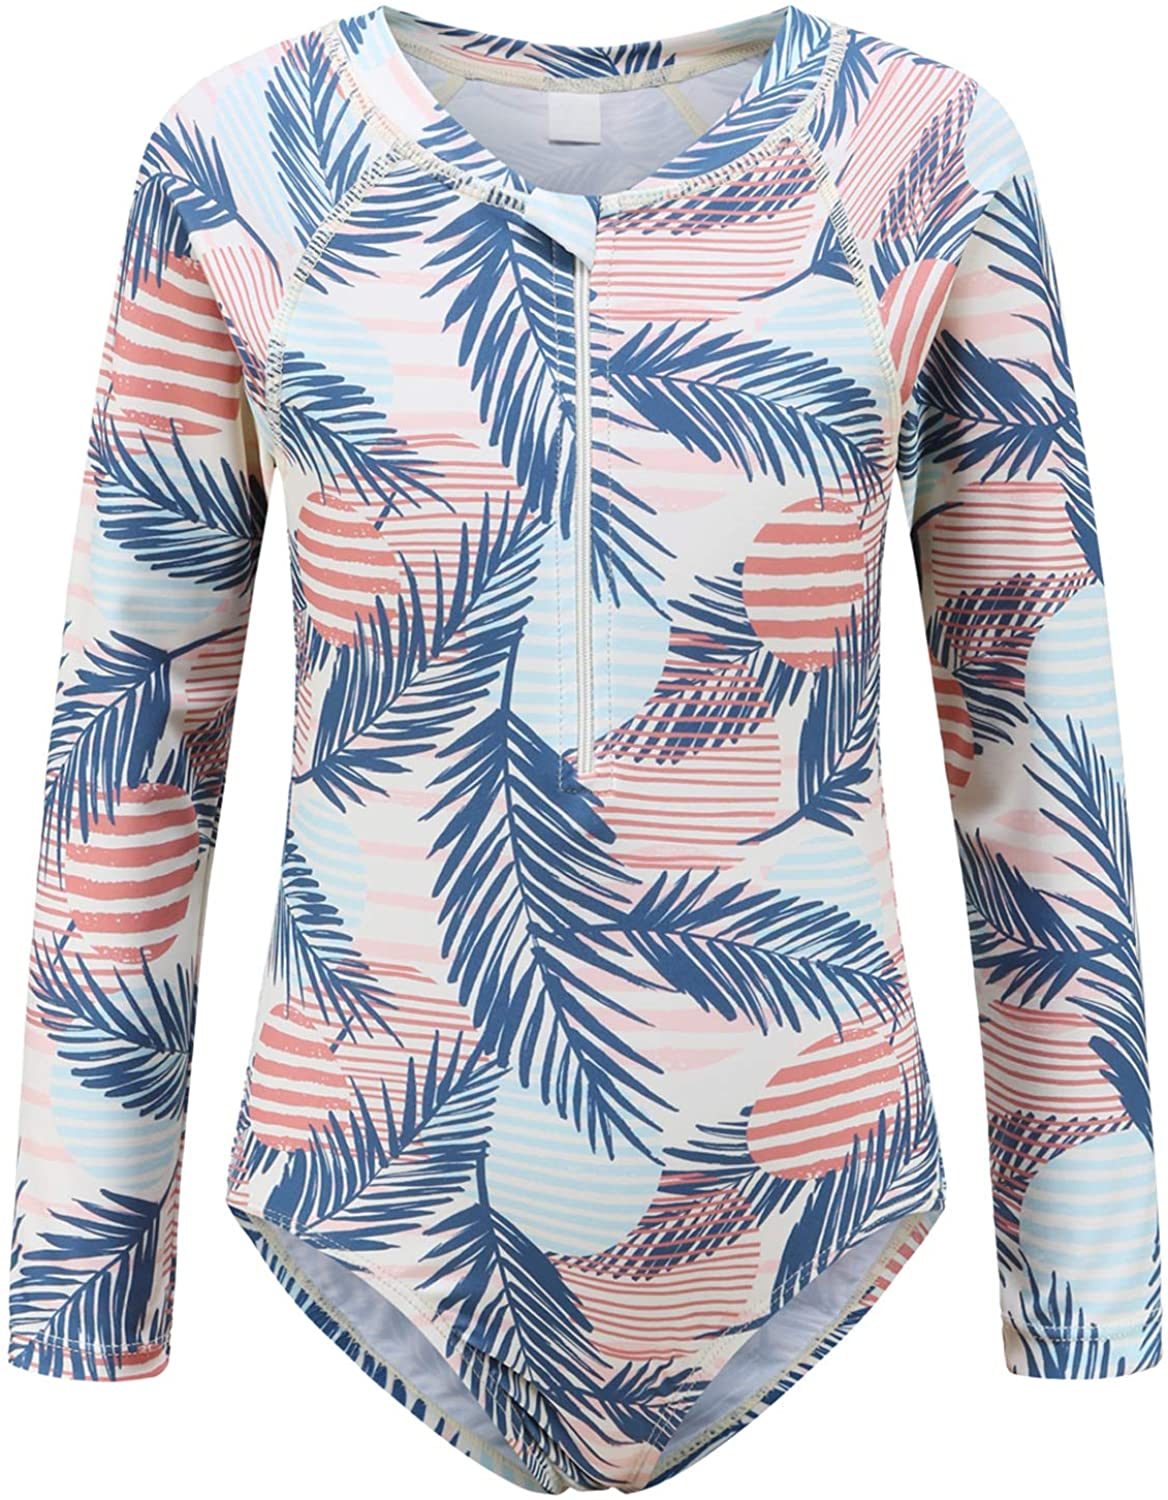 Girls Long Sleeve Rash Guard Swimsuits One Piece Bathing Suit for Kids UPF 50+ Sun Protection Swim Shirts for Surfing Palm Leaf Size 6